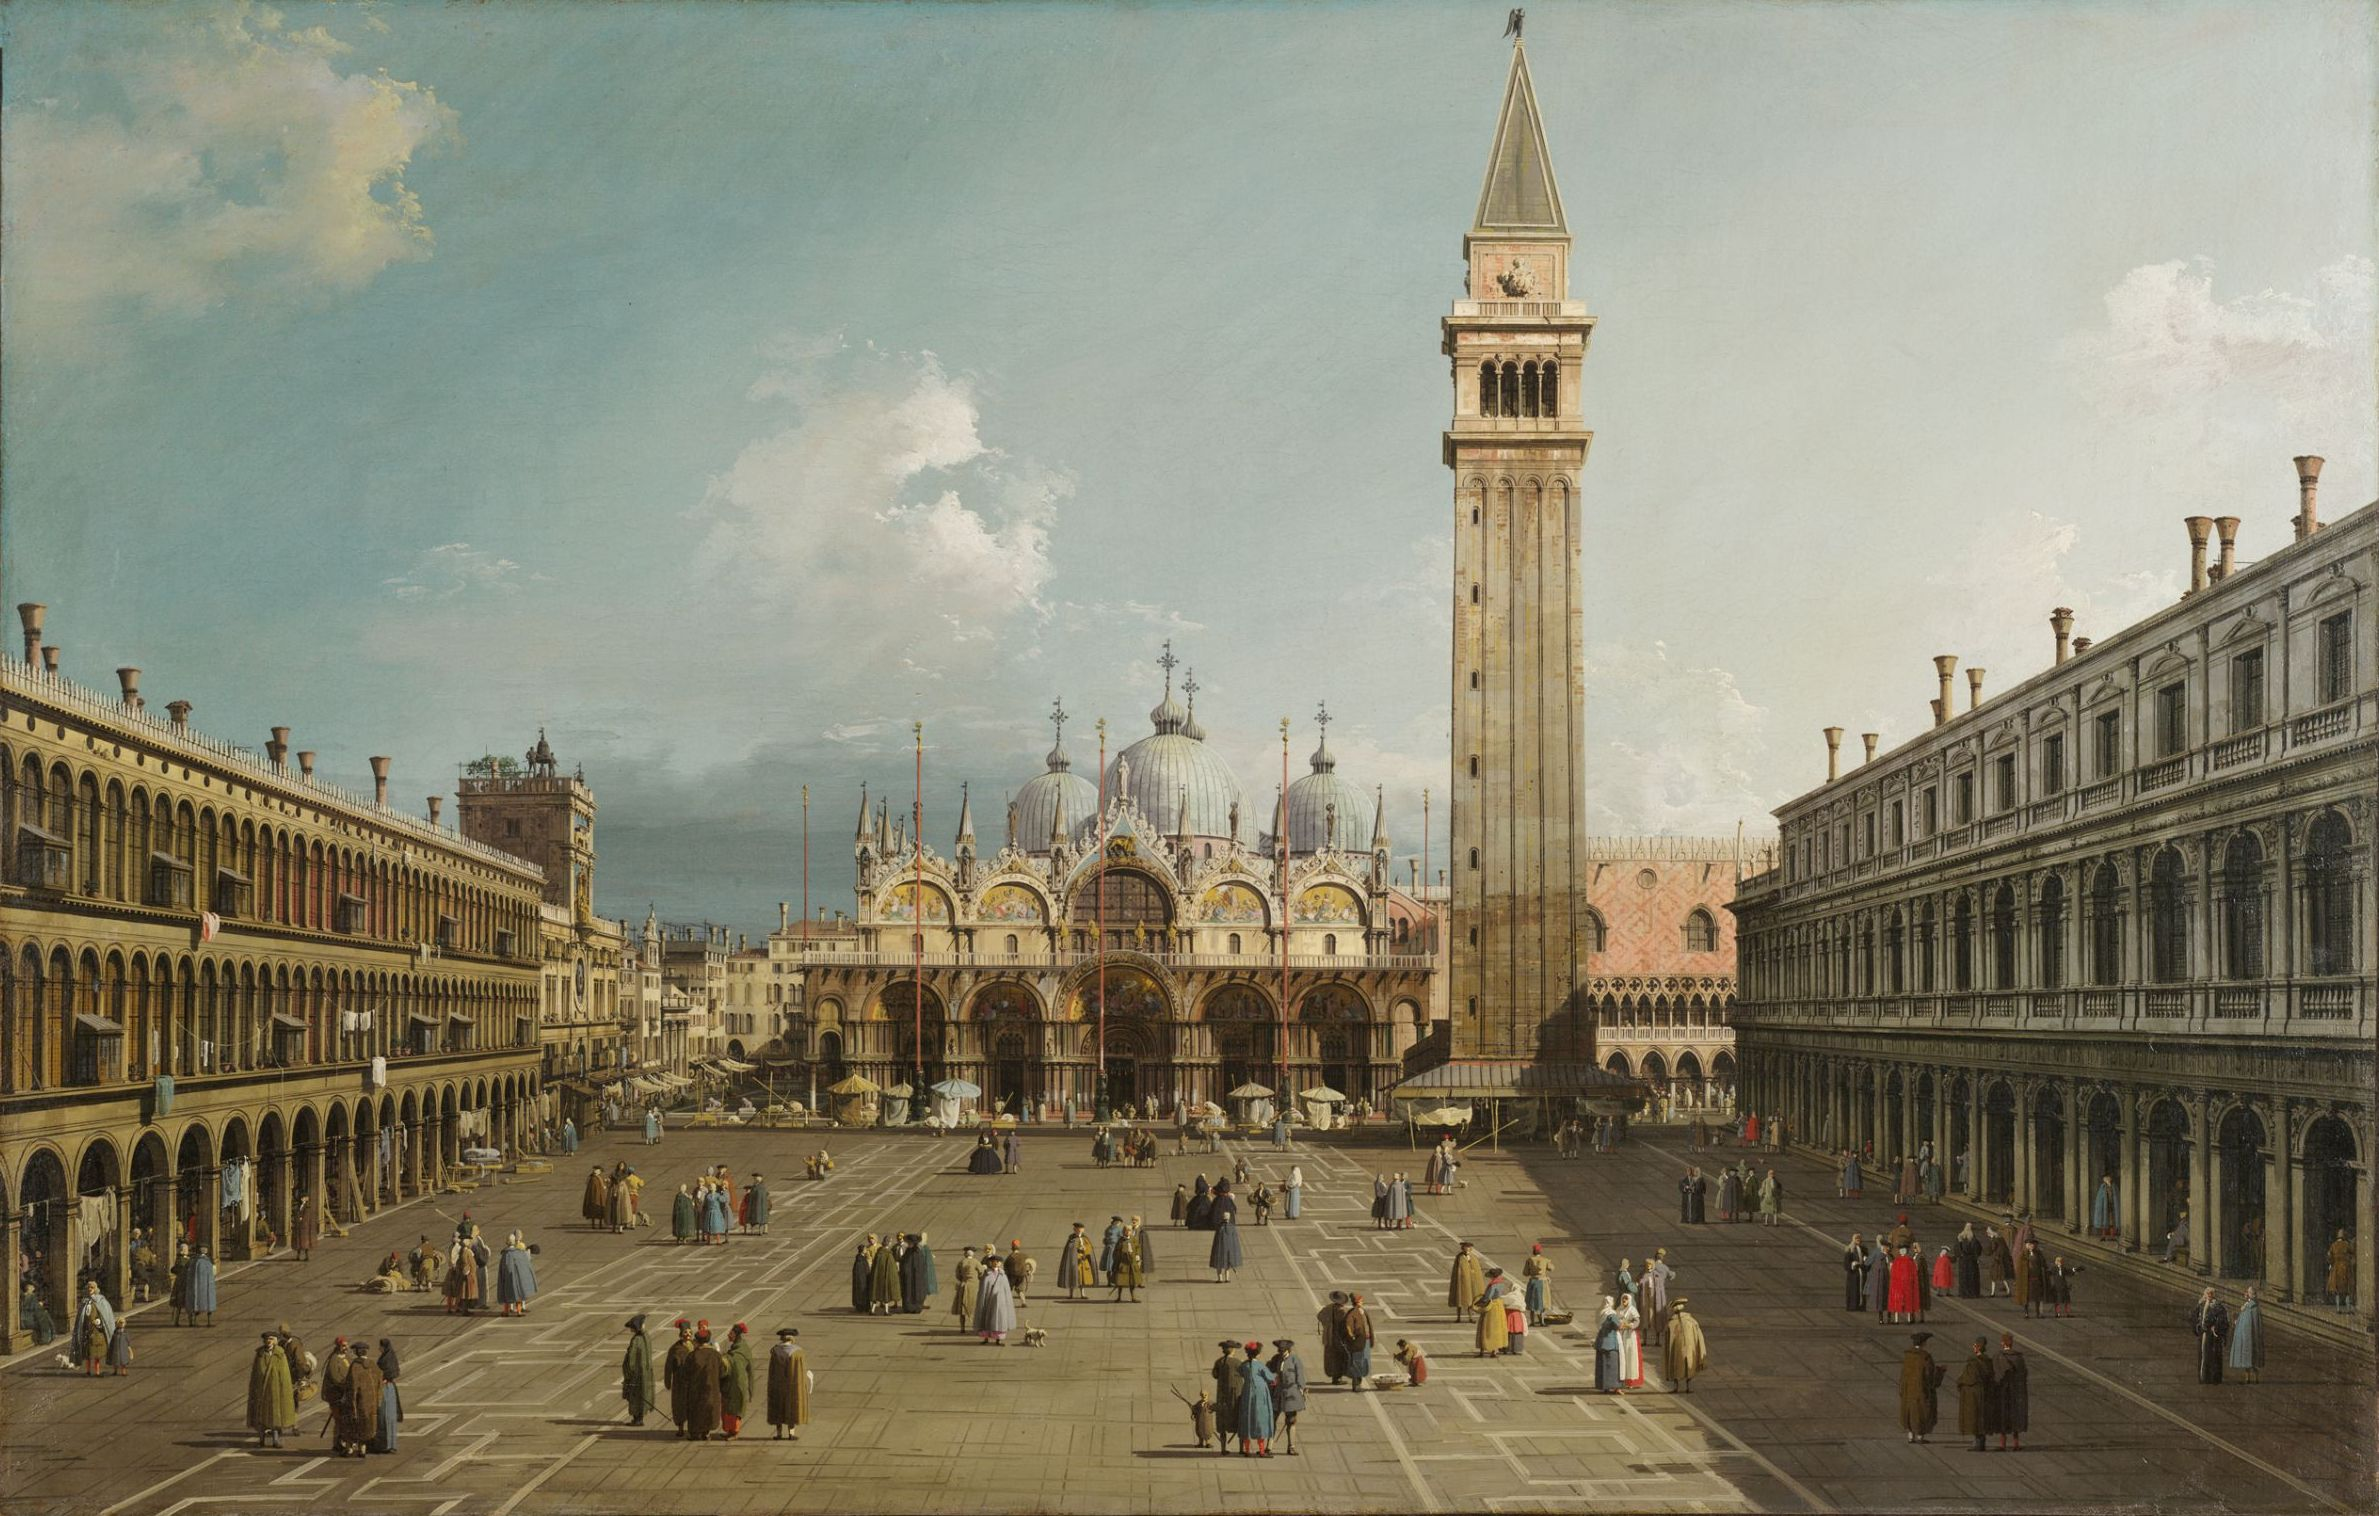 http://upload.wikimedia.org/wikipedia/commons/f/fb/Piazza_San_Marco_with_the_Basilica%2C_by_Canaletto%2C_1730._Fogg_Art_Museum%2C_Cambridge.jpg